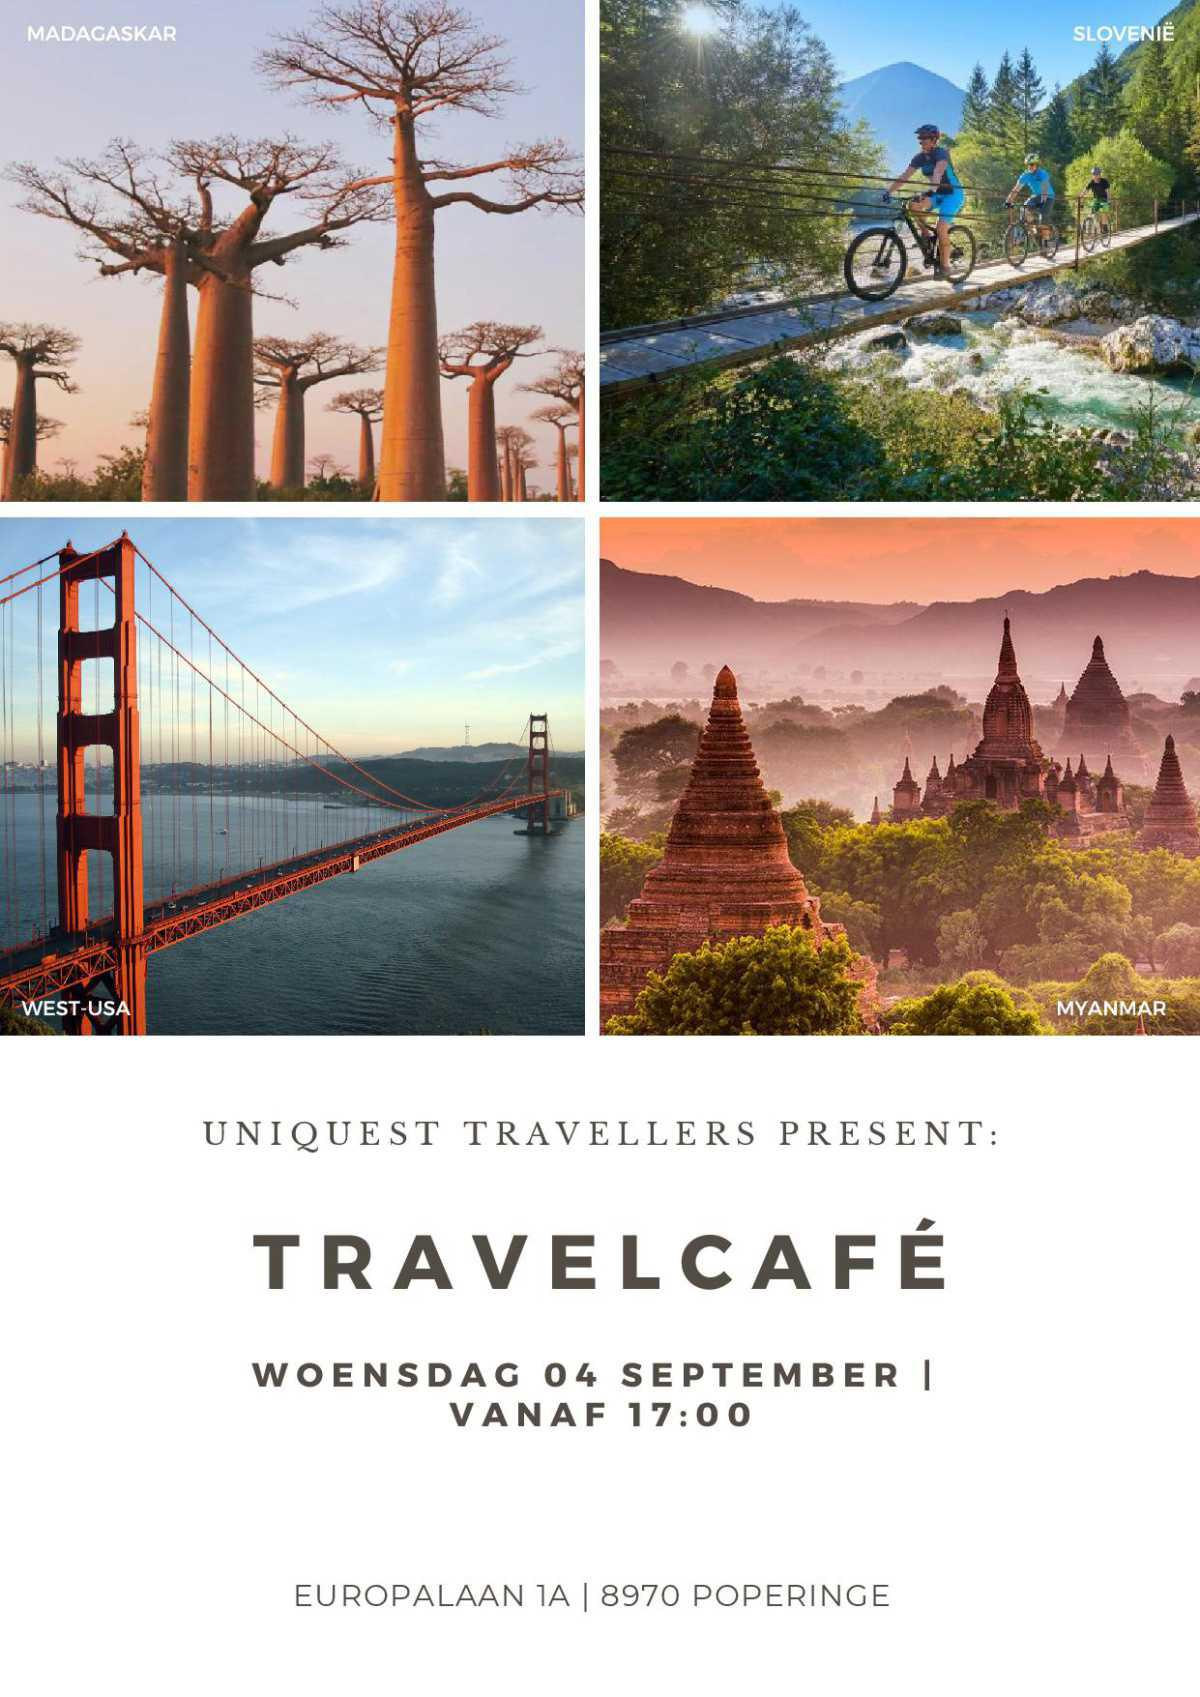 UniQuest Travel Cafe - 04 September 2019